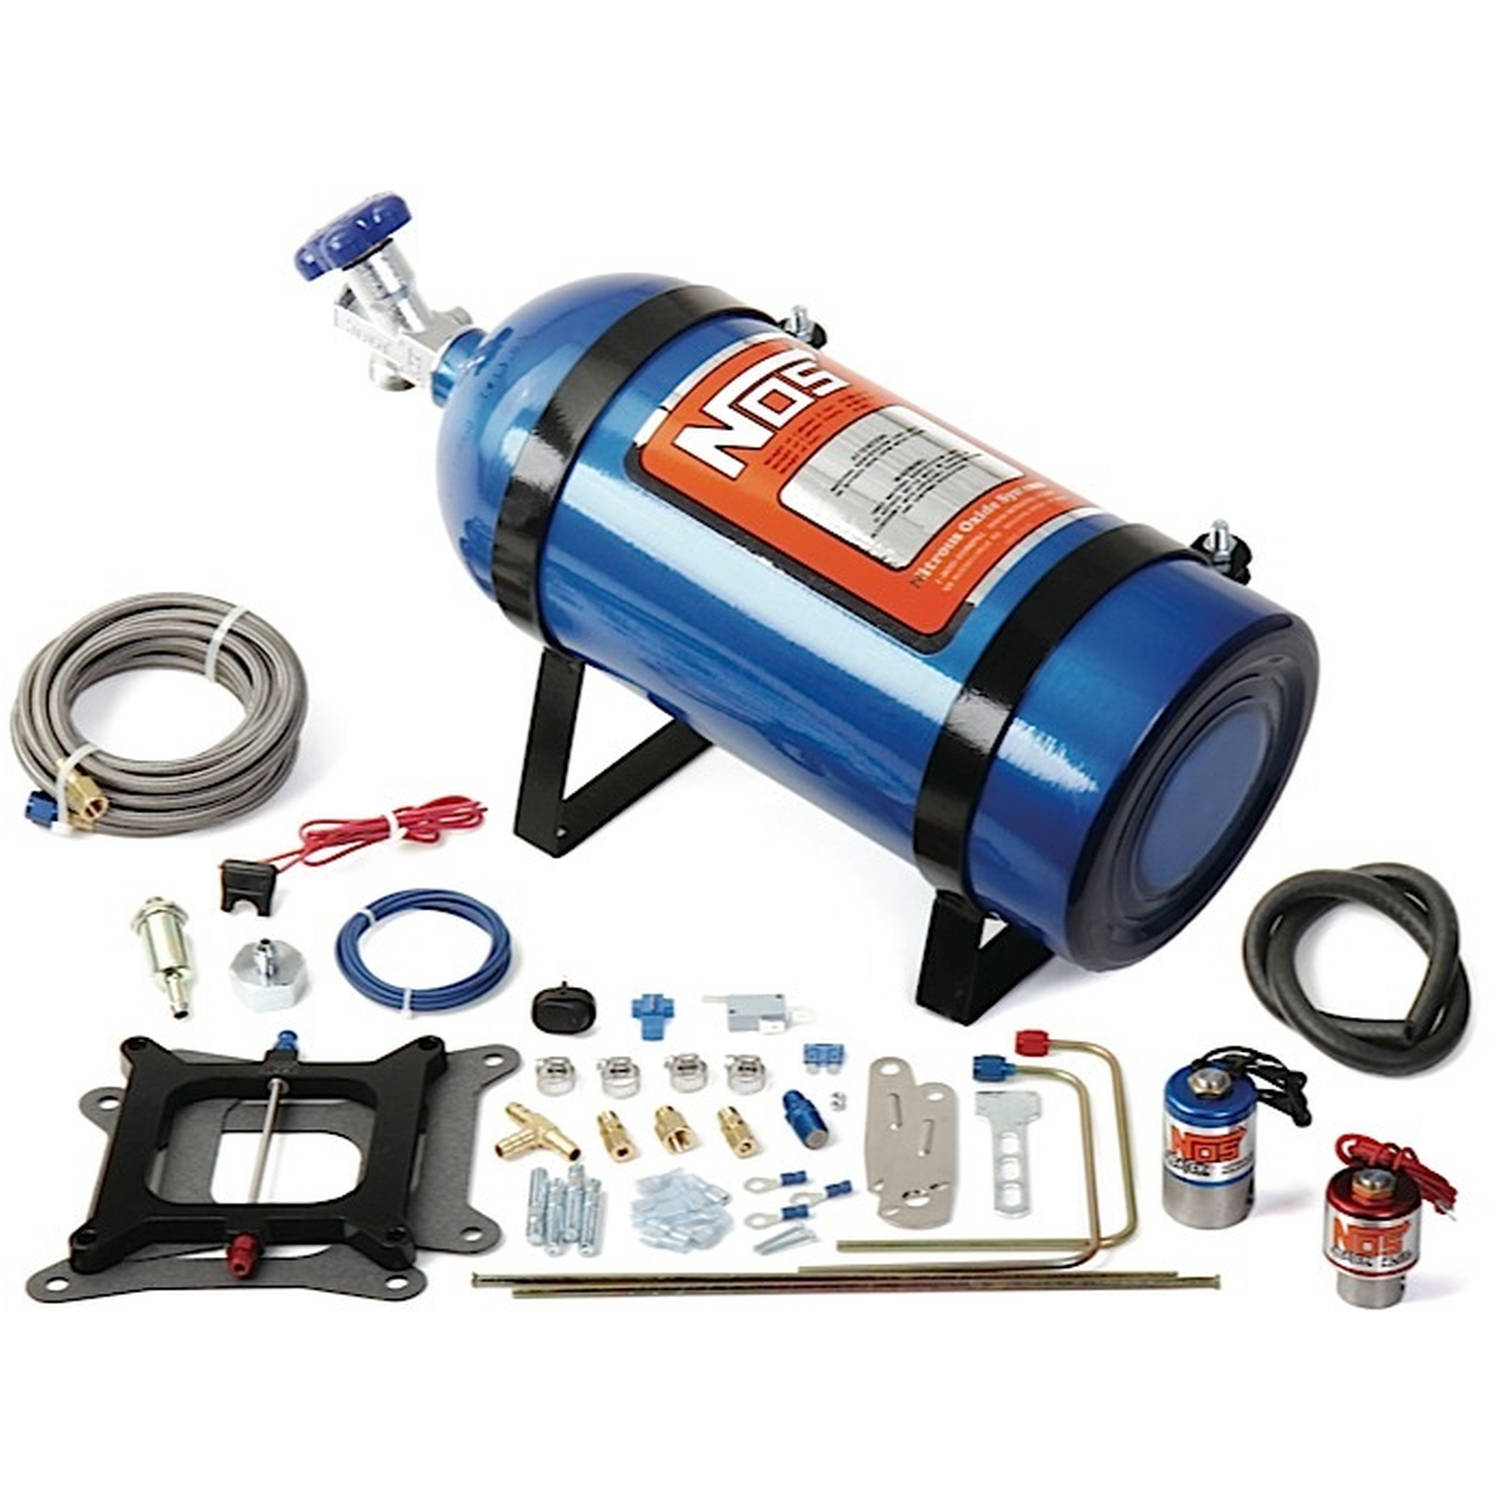 Cheater Kit Holley 4Bbl Sngl Replacement Auto Part, Easy to Install